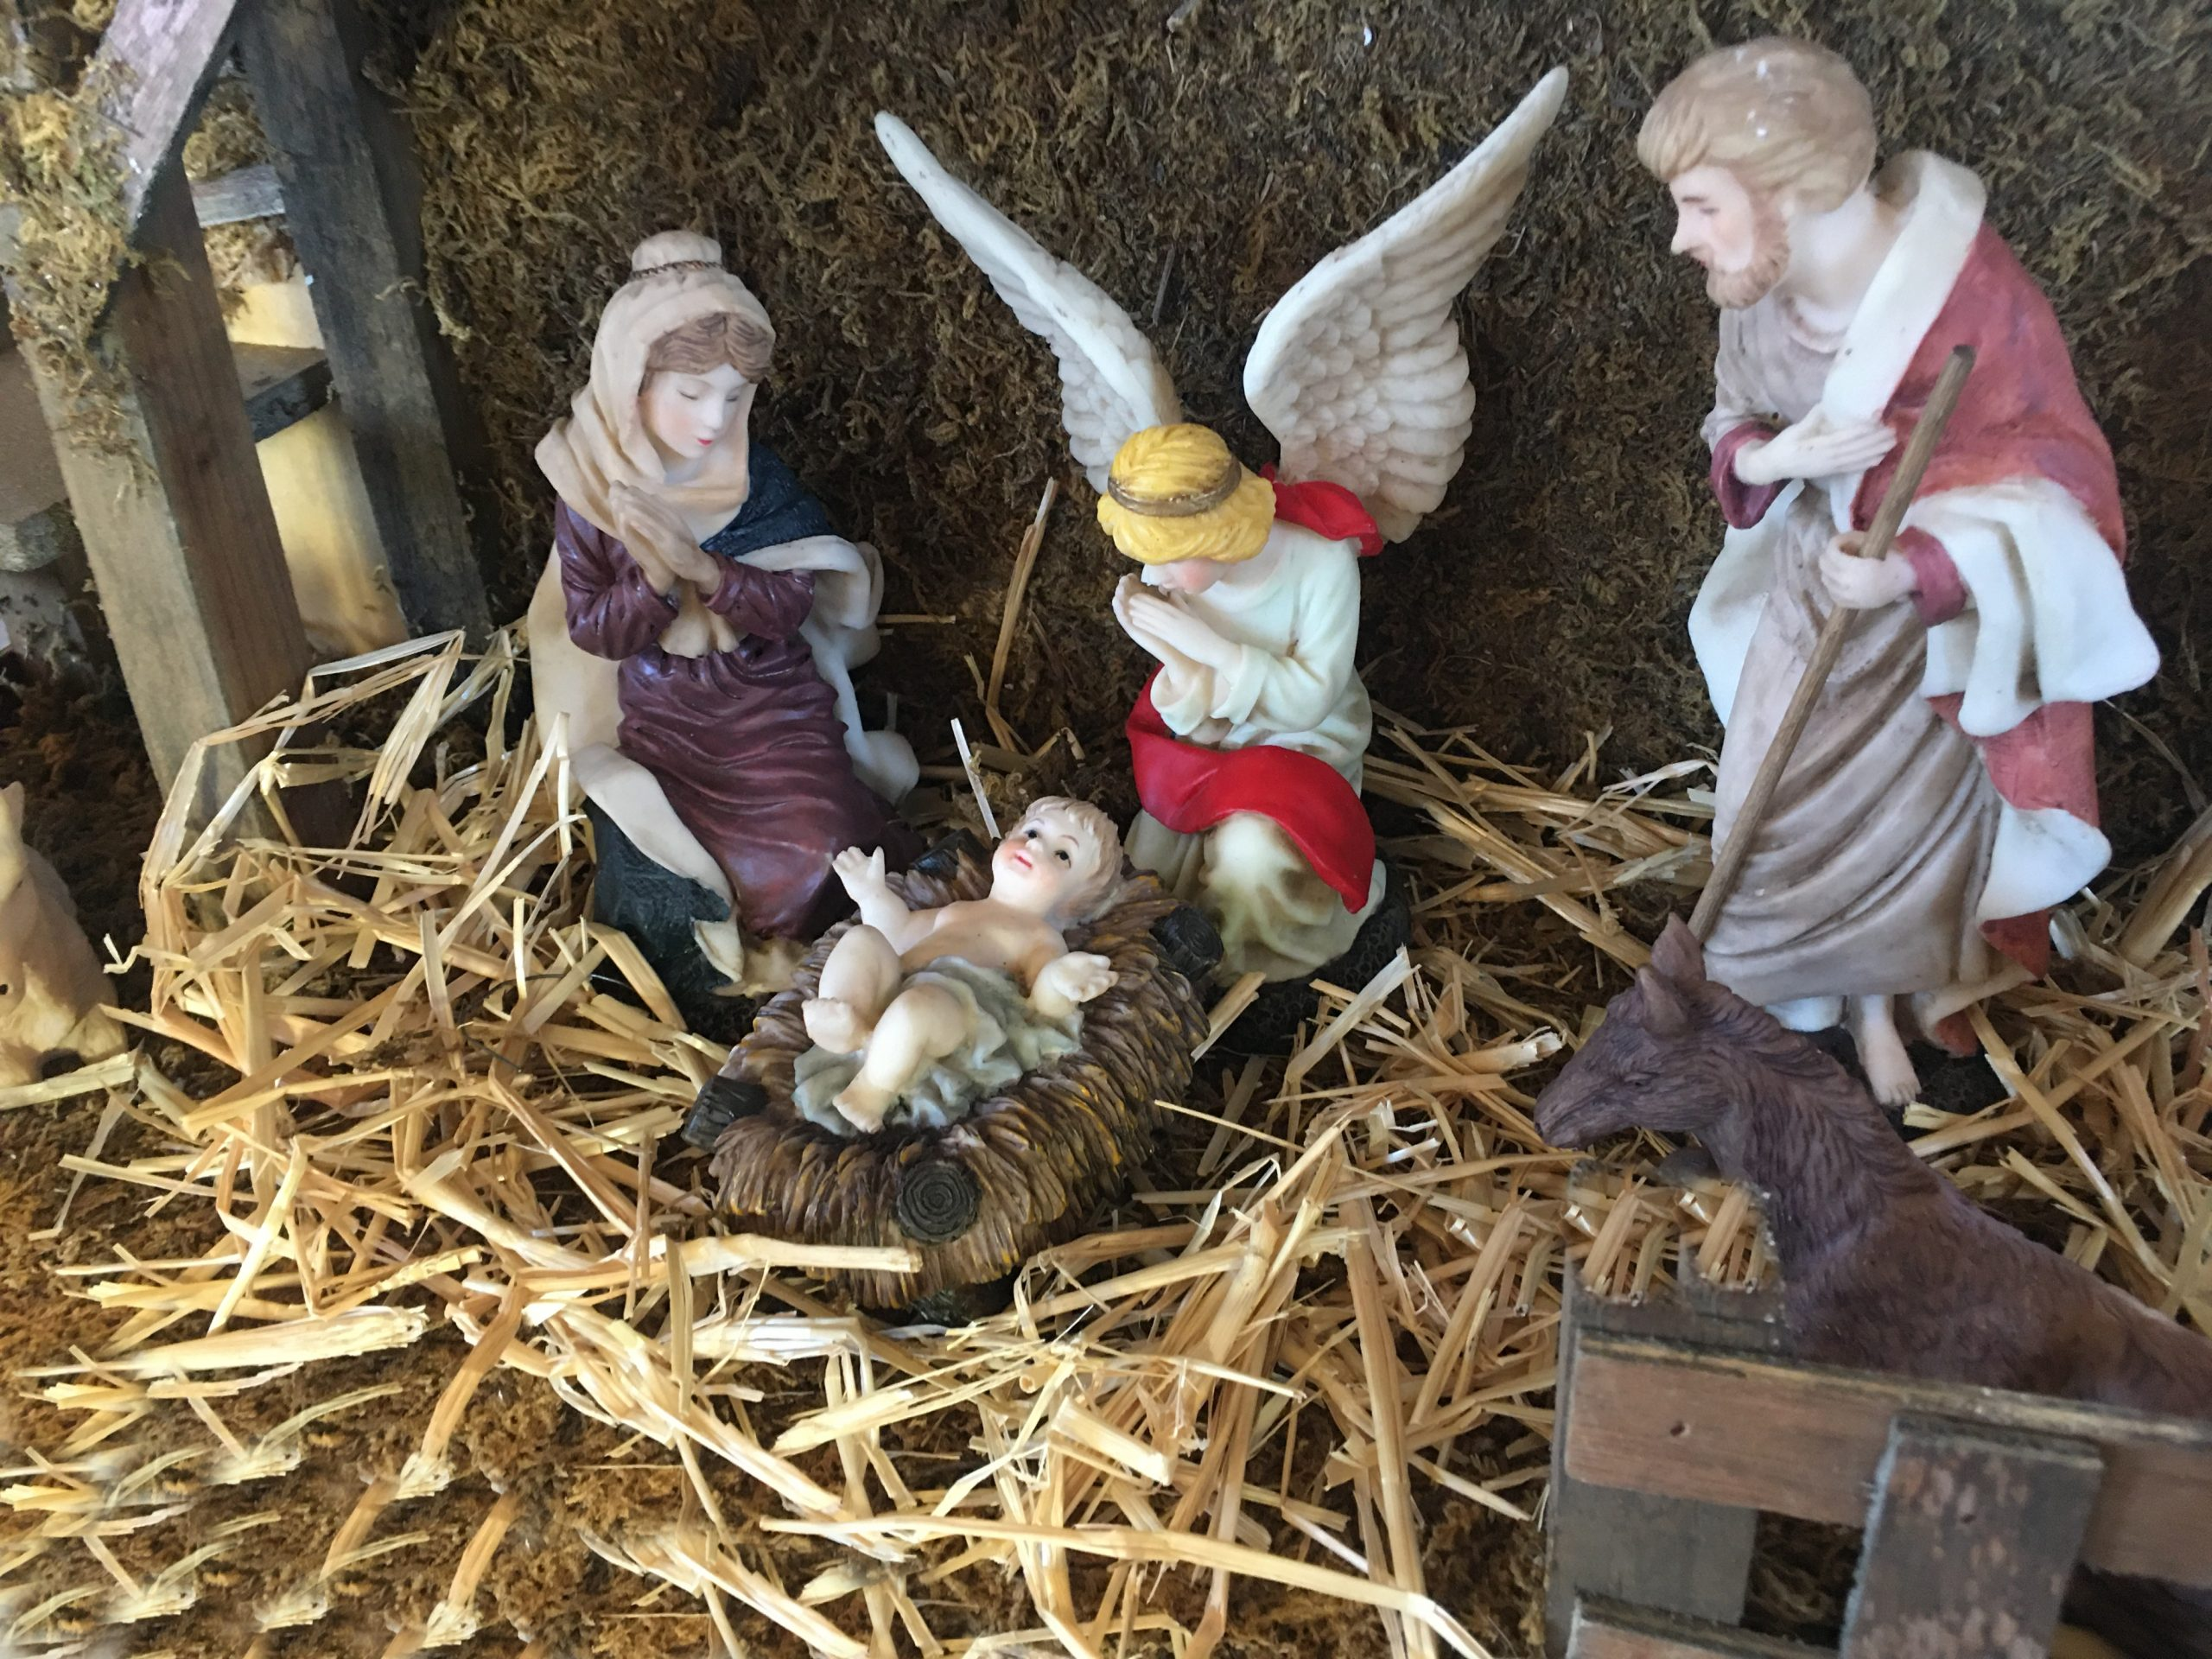 19 12 08 SMUMC Advent 2 Creche (1)